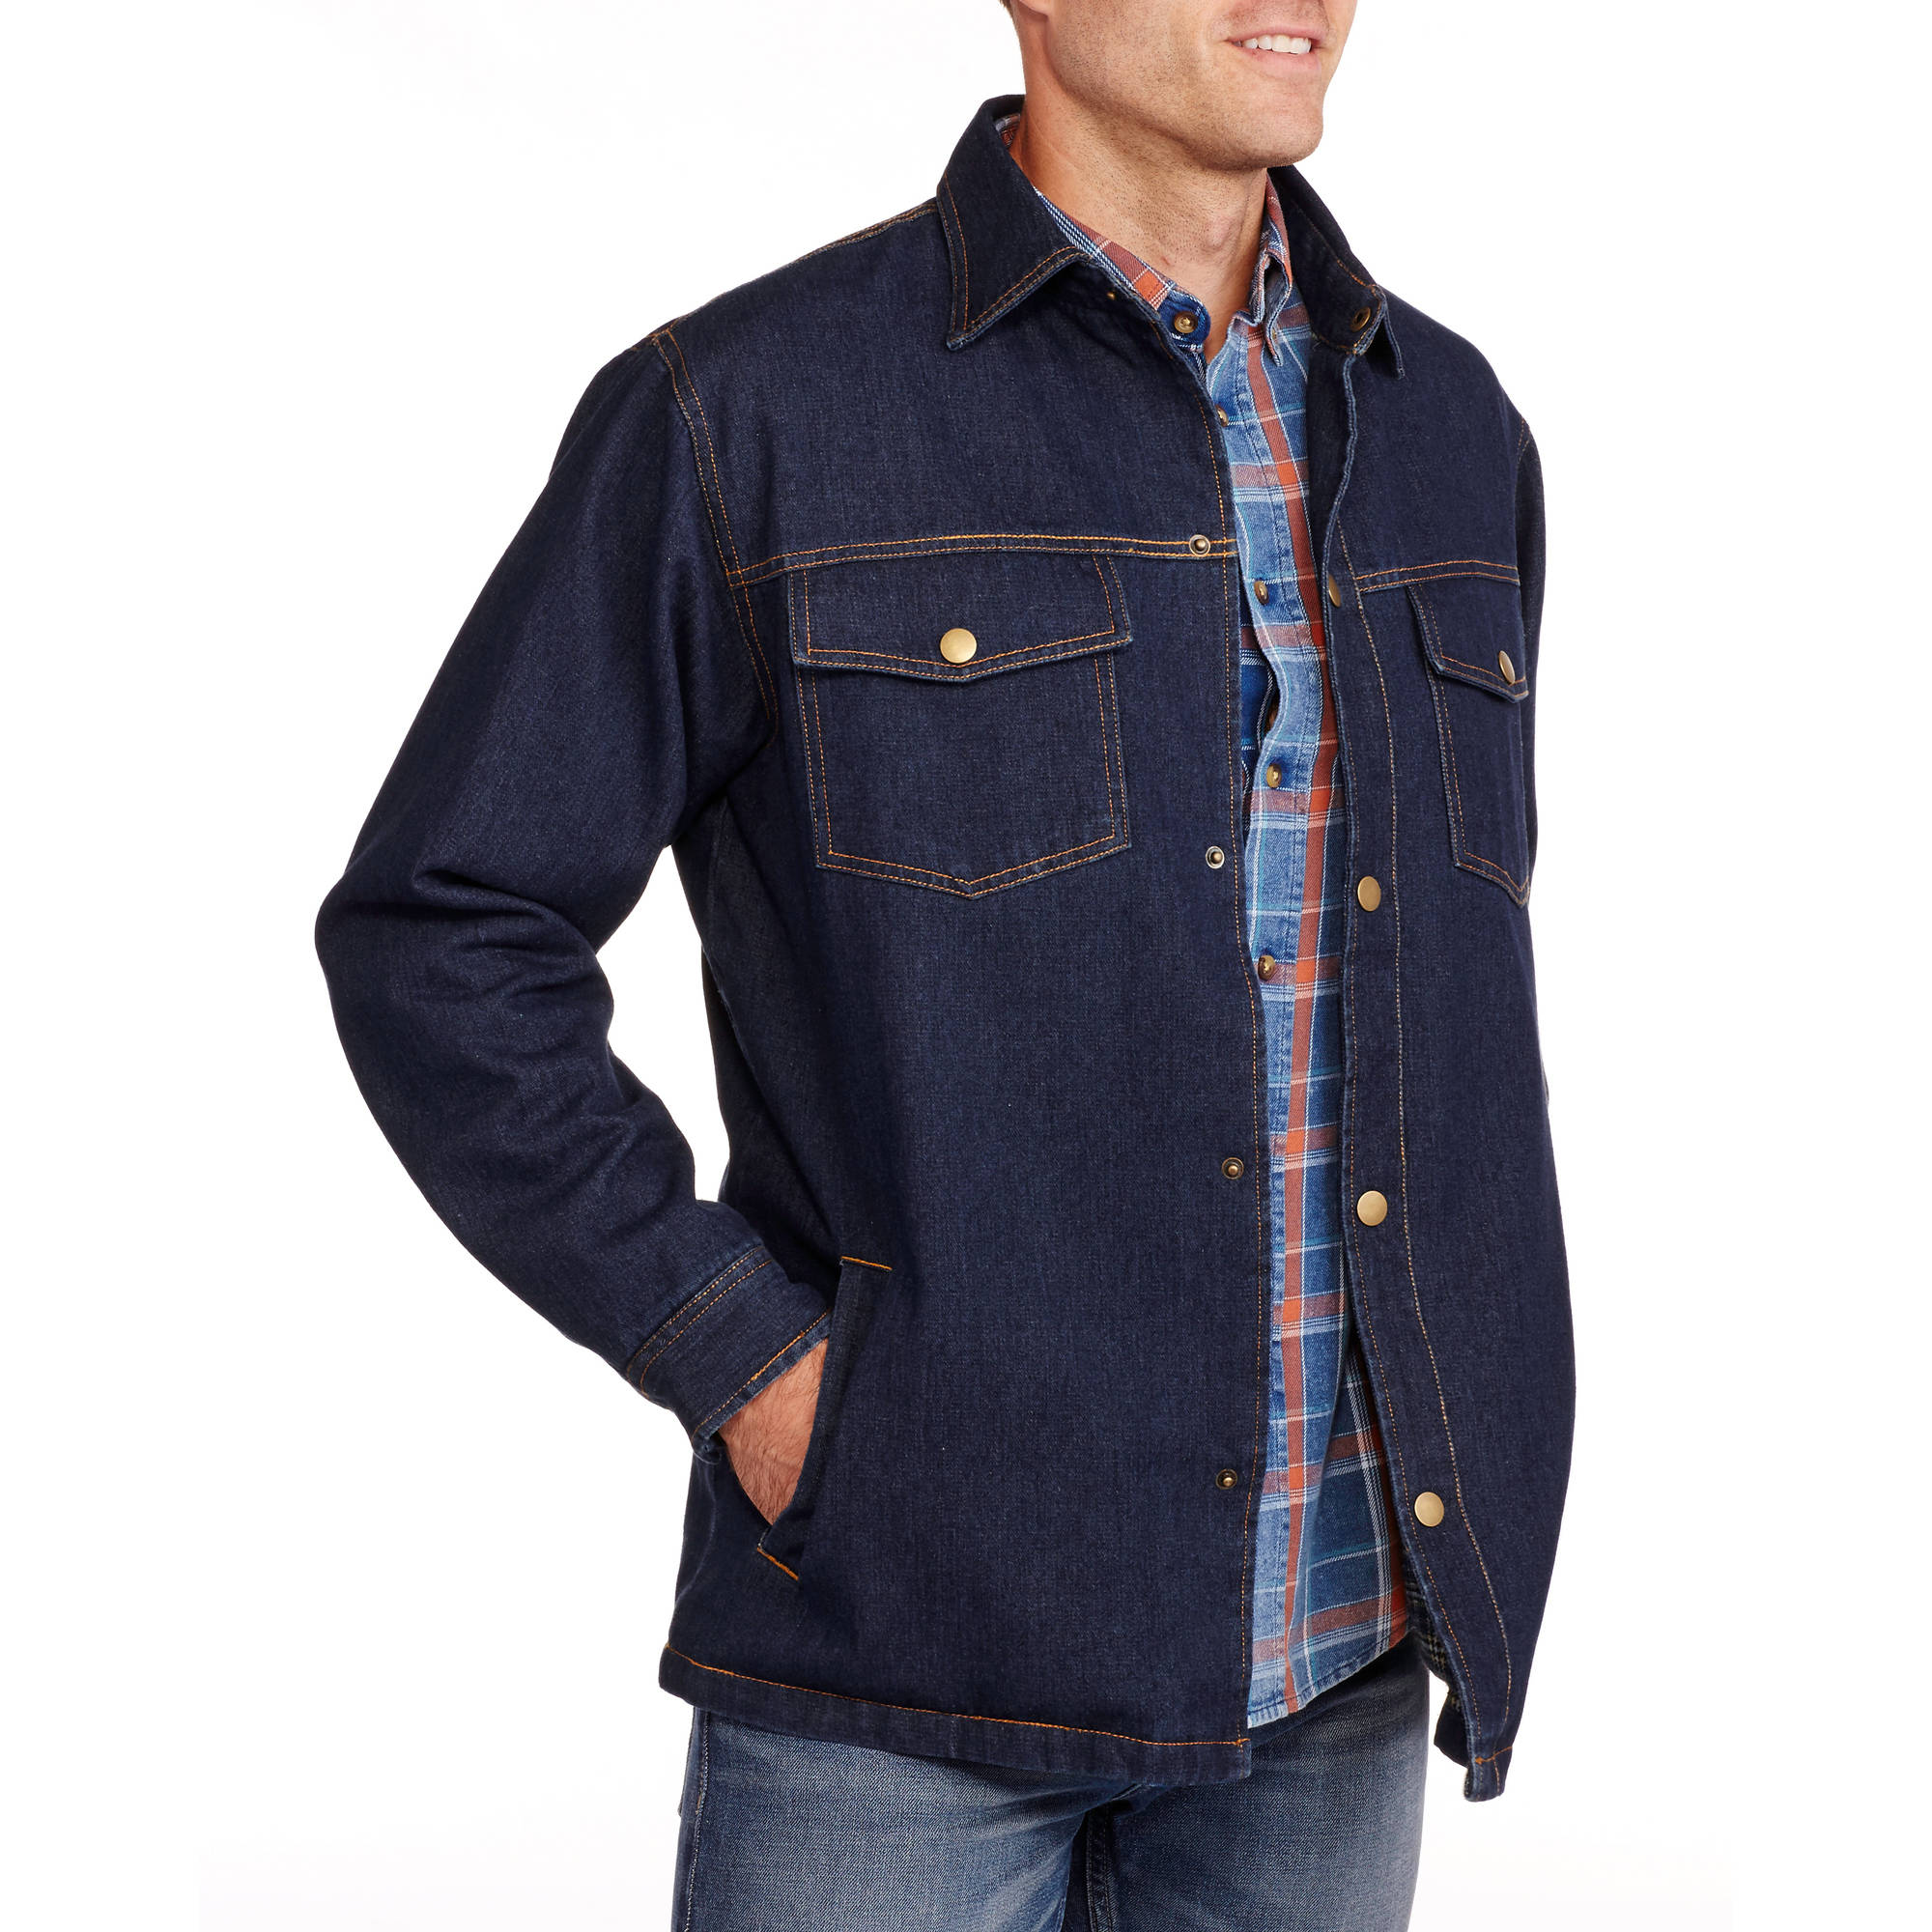 Men's Plaid Fleece Lined Denim Jacket